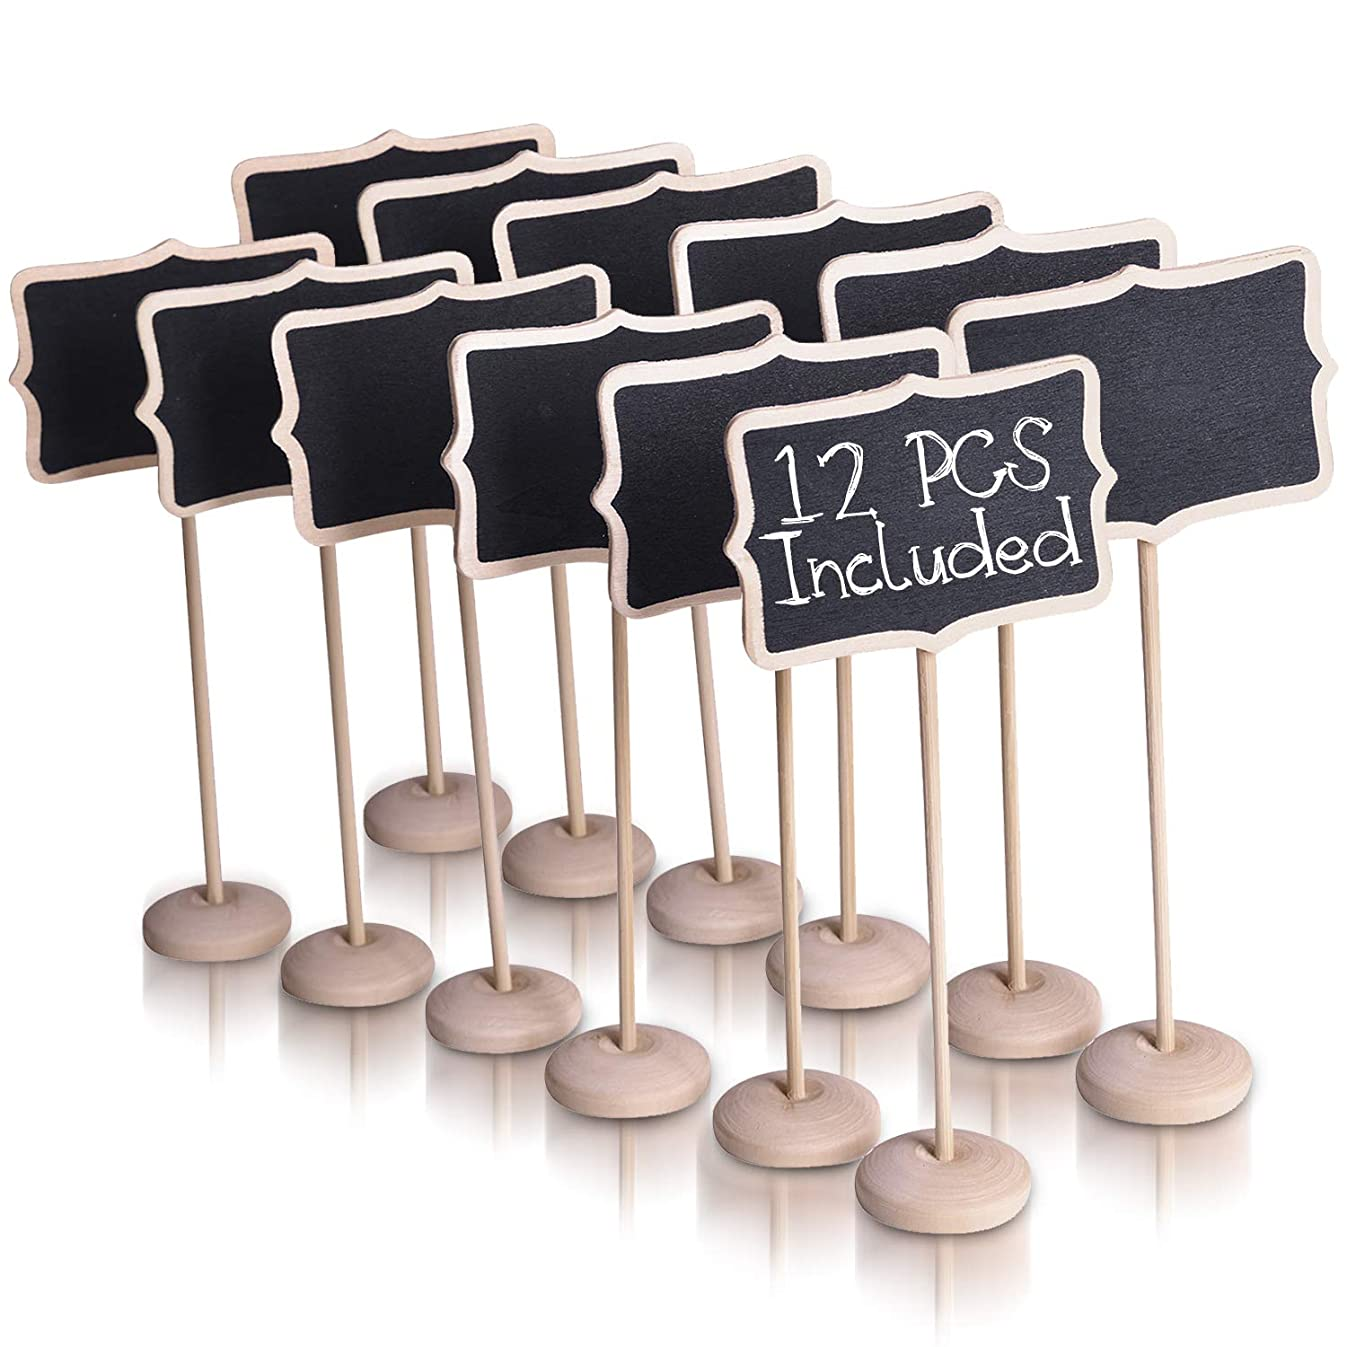 Ideas In Life Mini Chalkboard Signs for Food with Stand - Set of 12 Mini Chalkboards Blackboard Food Labels for Party Buffet